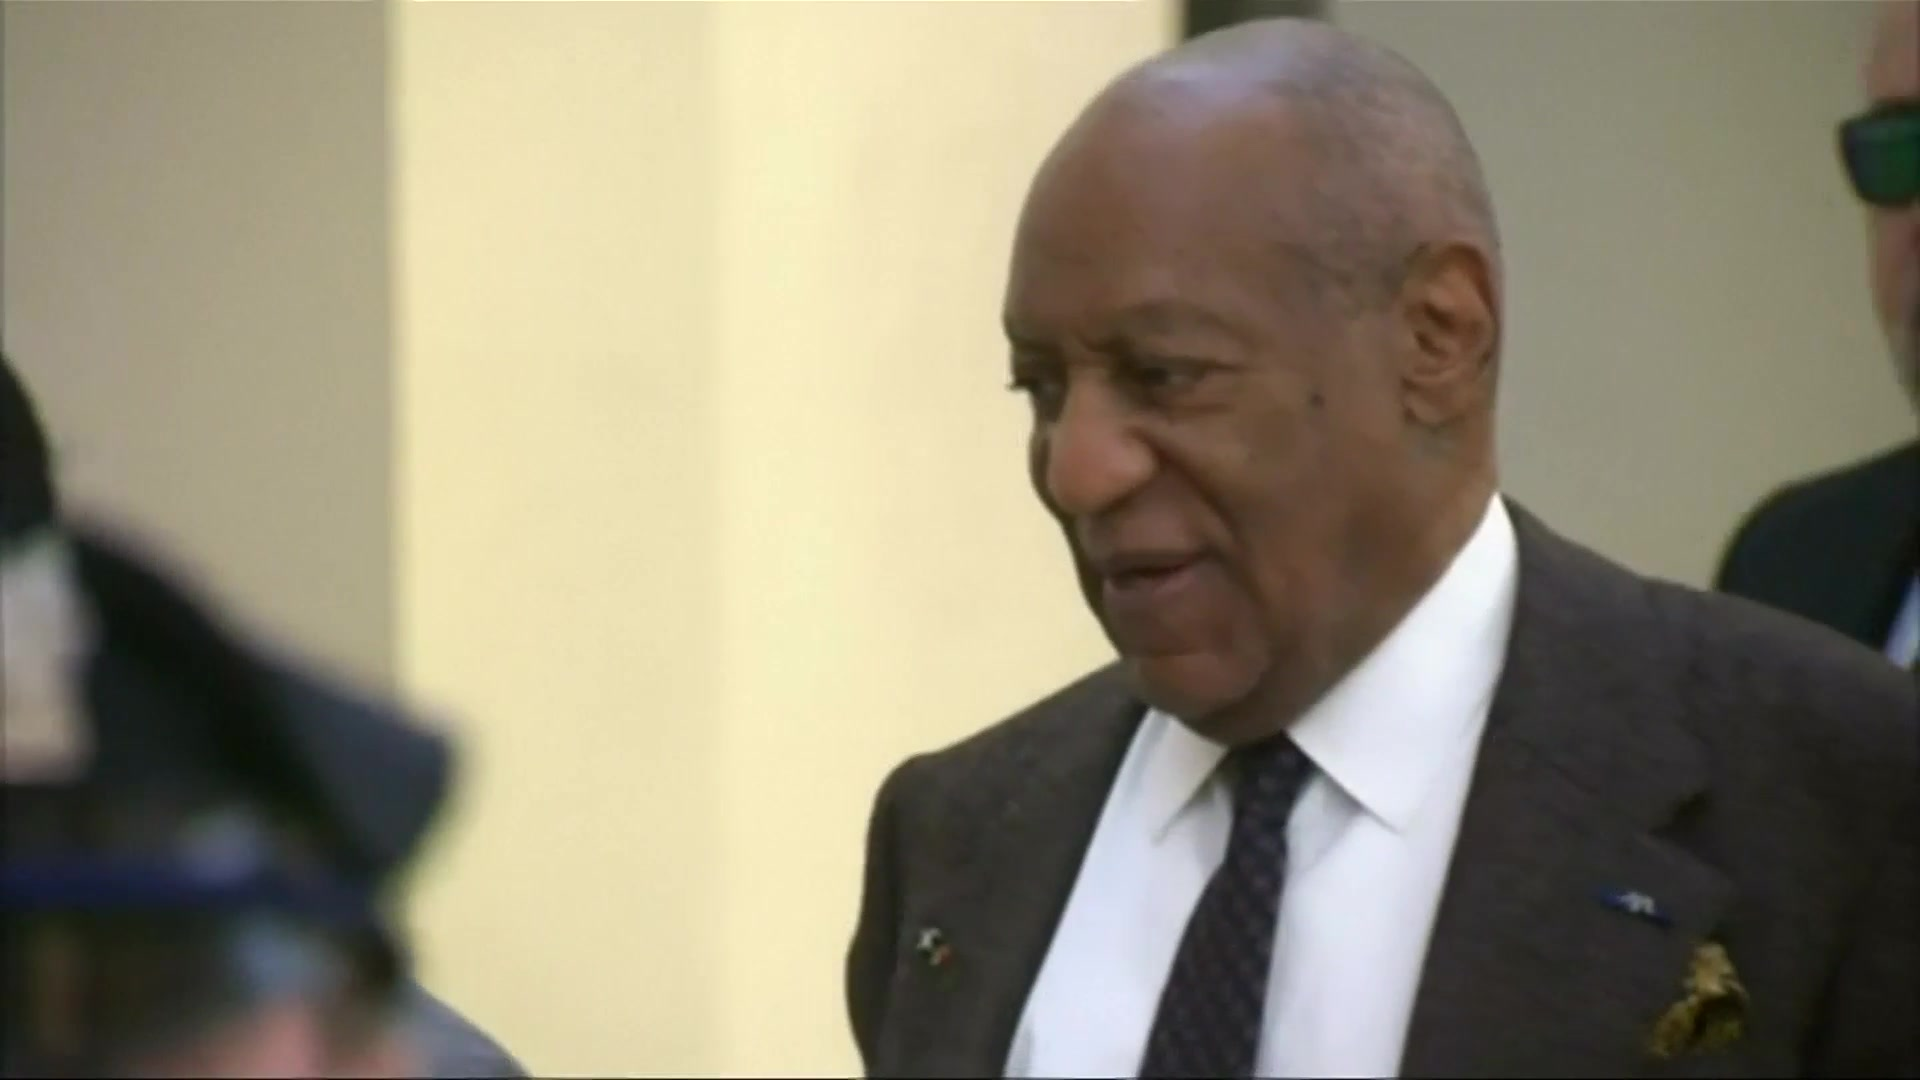 Cosby Sex Assault Case Headed to Trial